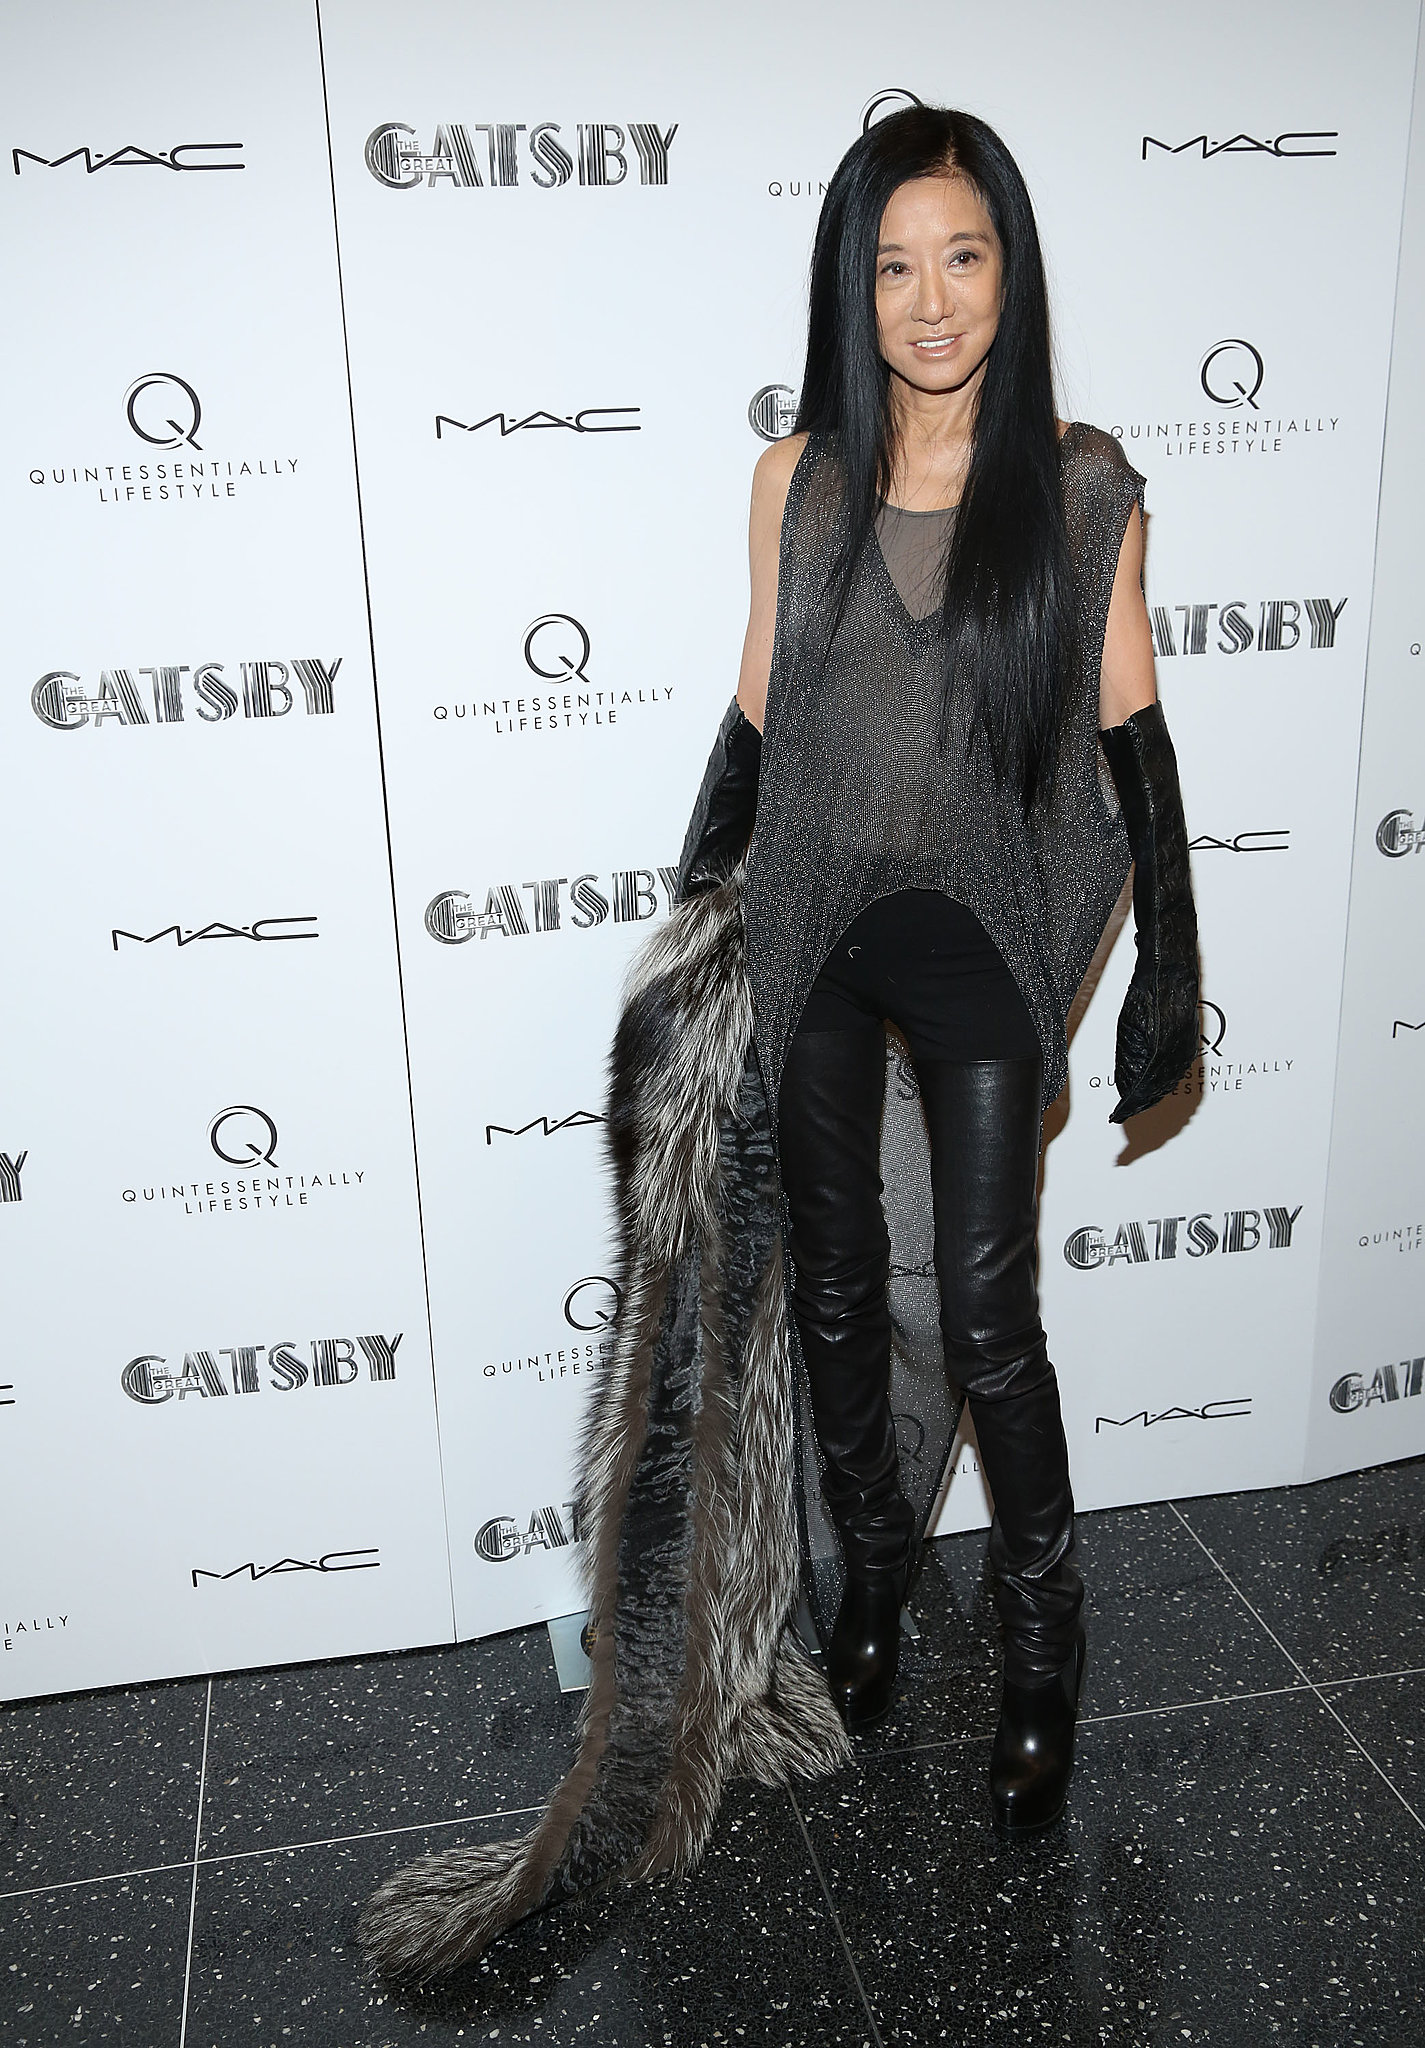 Vera Wang stepped out in a combination of subtle sparkles, dramatic leather boots and gloves, and luxe furry finishes.